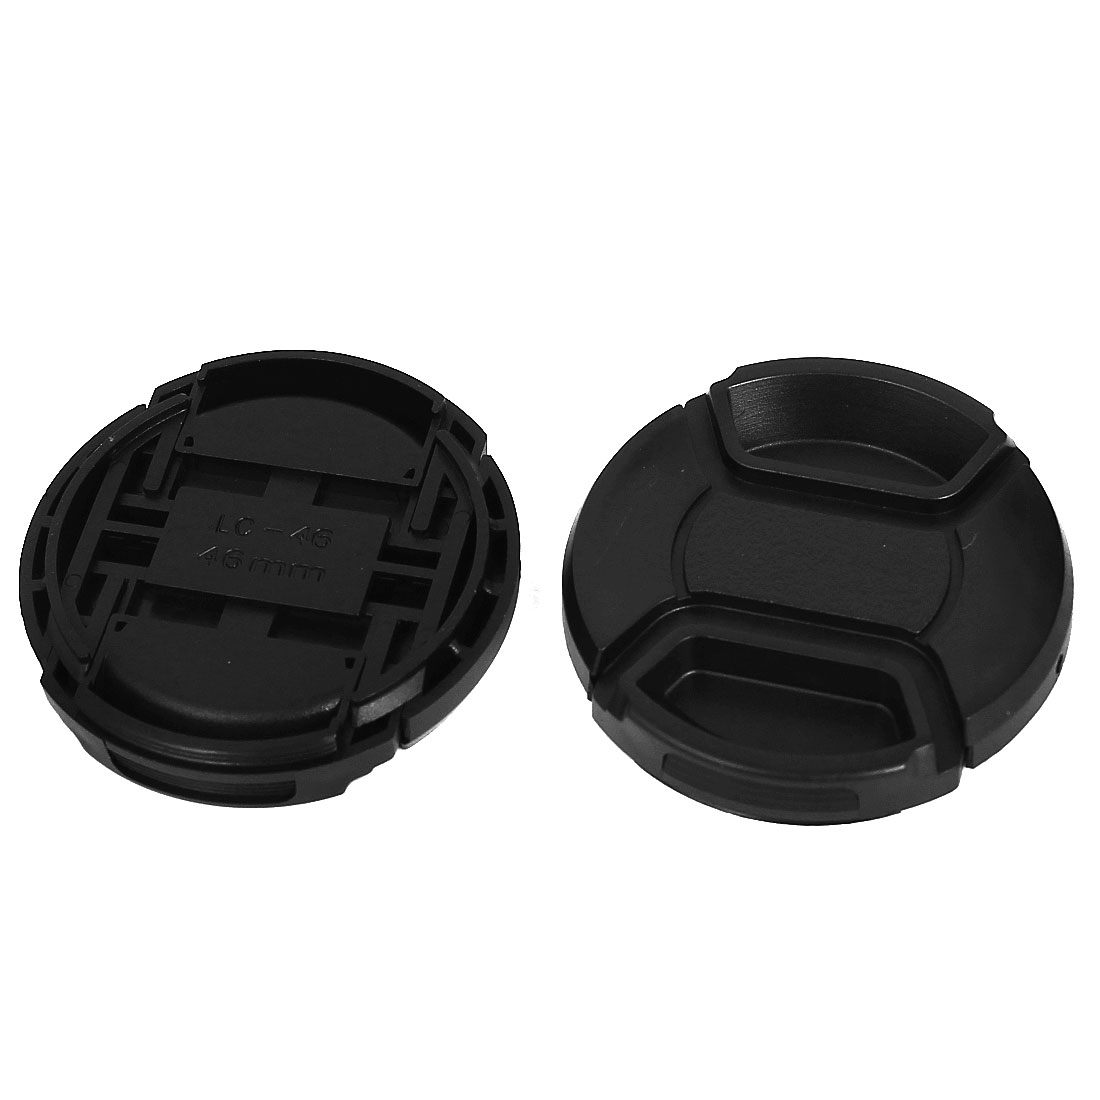 46mm Dia Plastic Front Snap Digital Camera Lens Caps Cover Protector Black 2Pcs